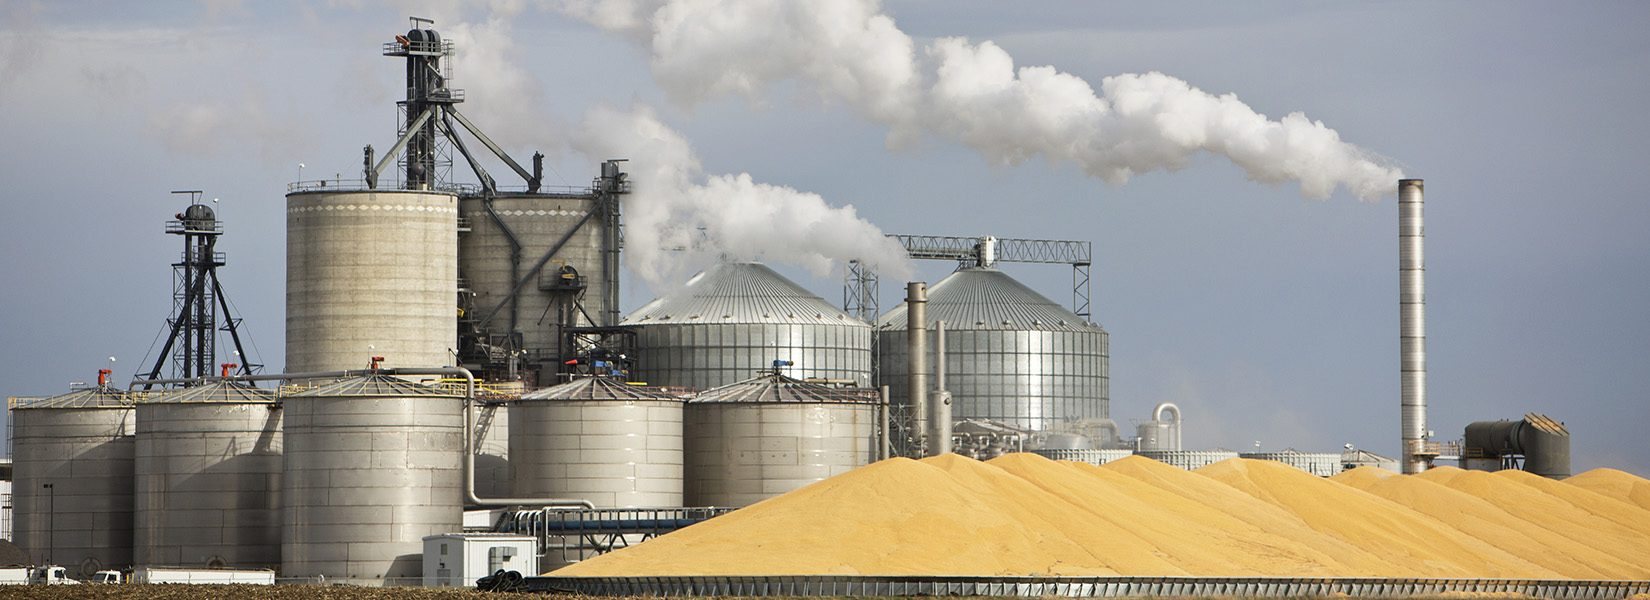 Ethanol Plant and Large Pile of Corn in The Midwest.